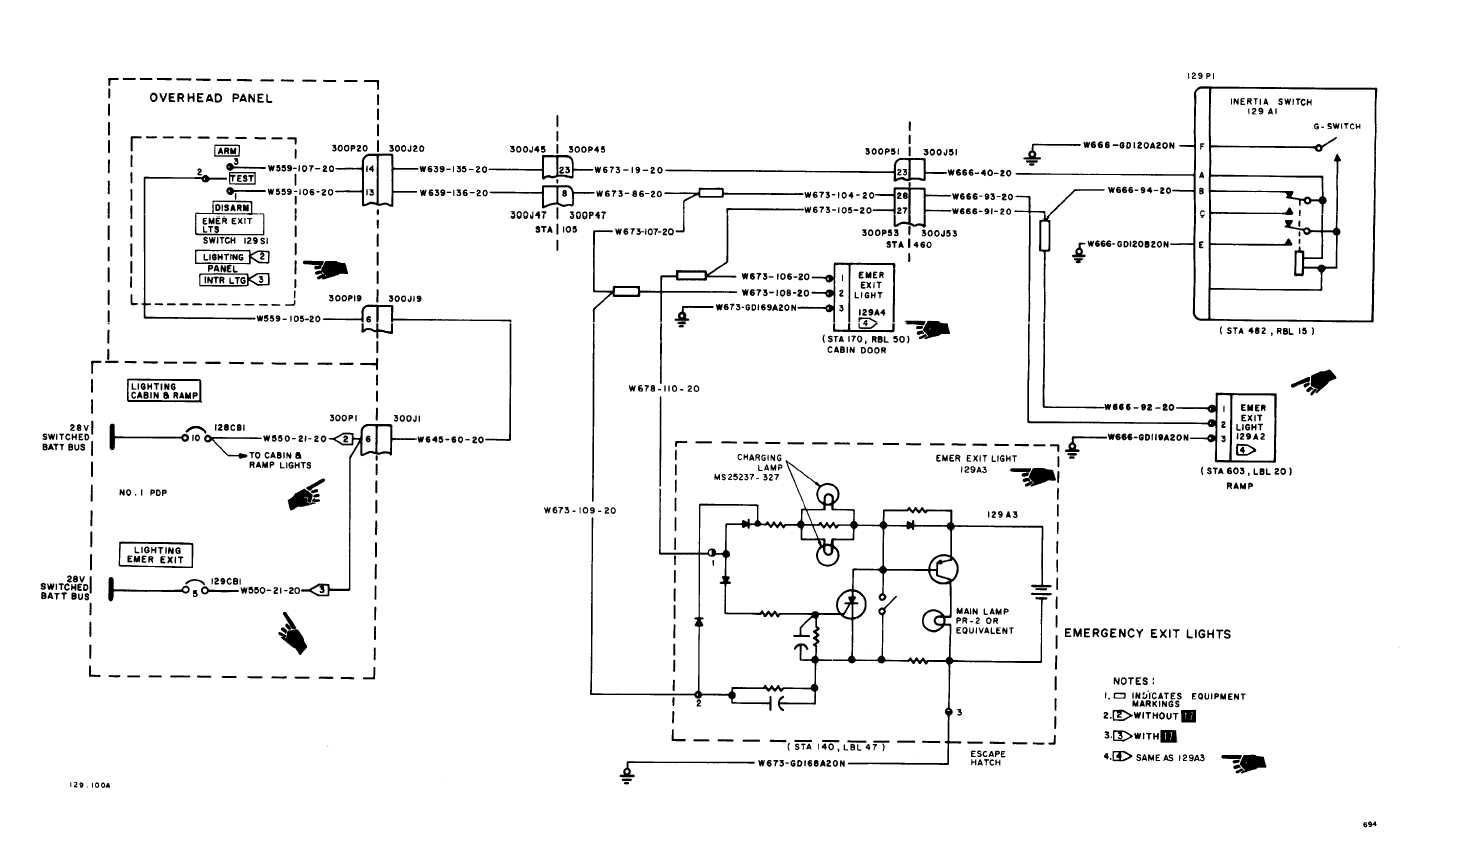 TM 55 1520 240 T 3_1054_1 emergency exit lights wiring diagram on wiring diagram for exit lights